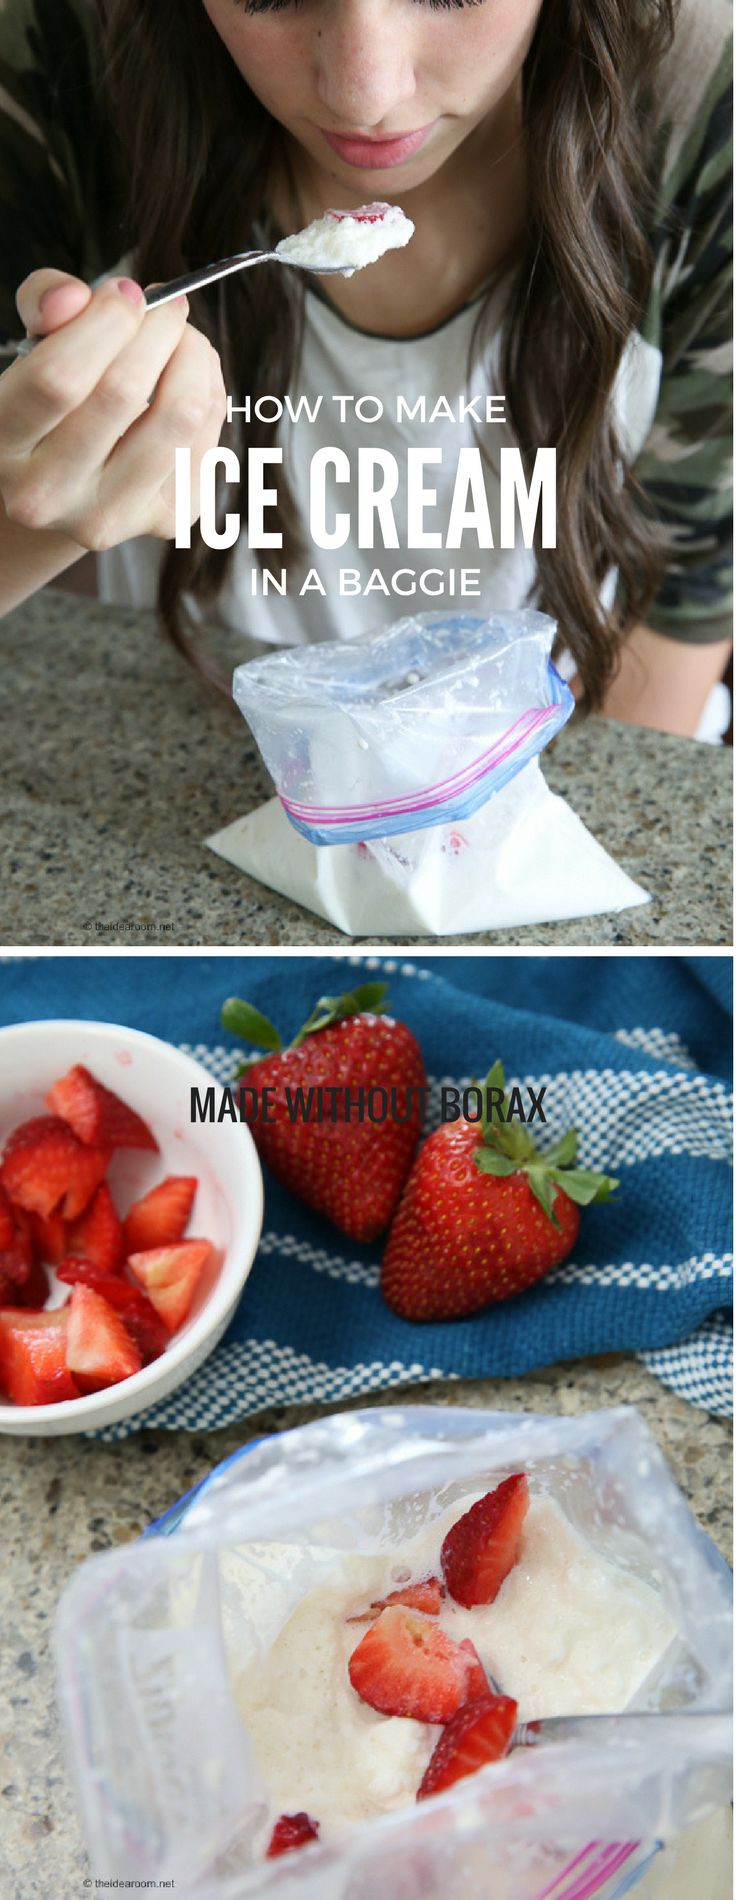 Recipes | Ice Cream Recipe | Summer Crafts | Make Your Own Ice Cream in a Baggie